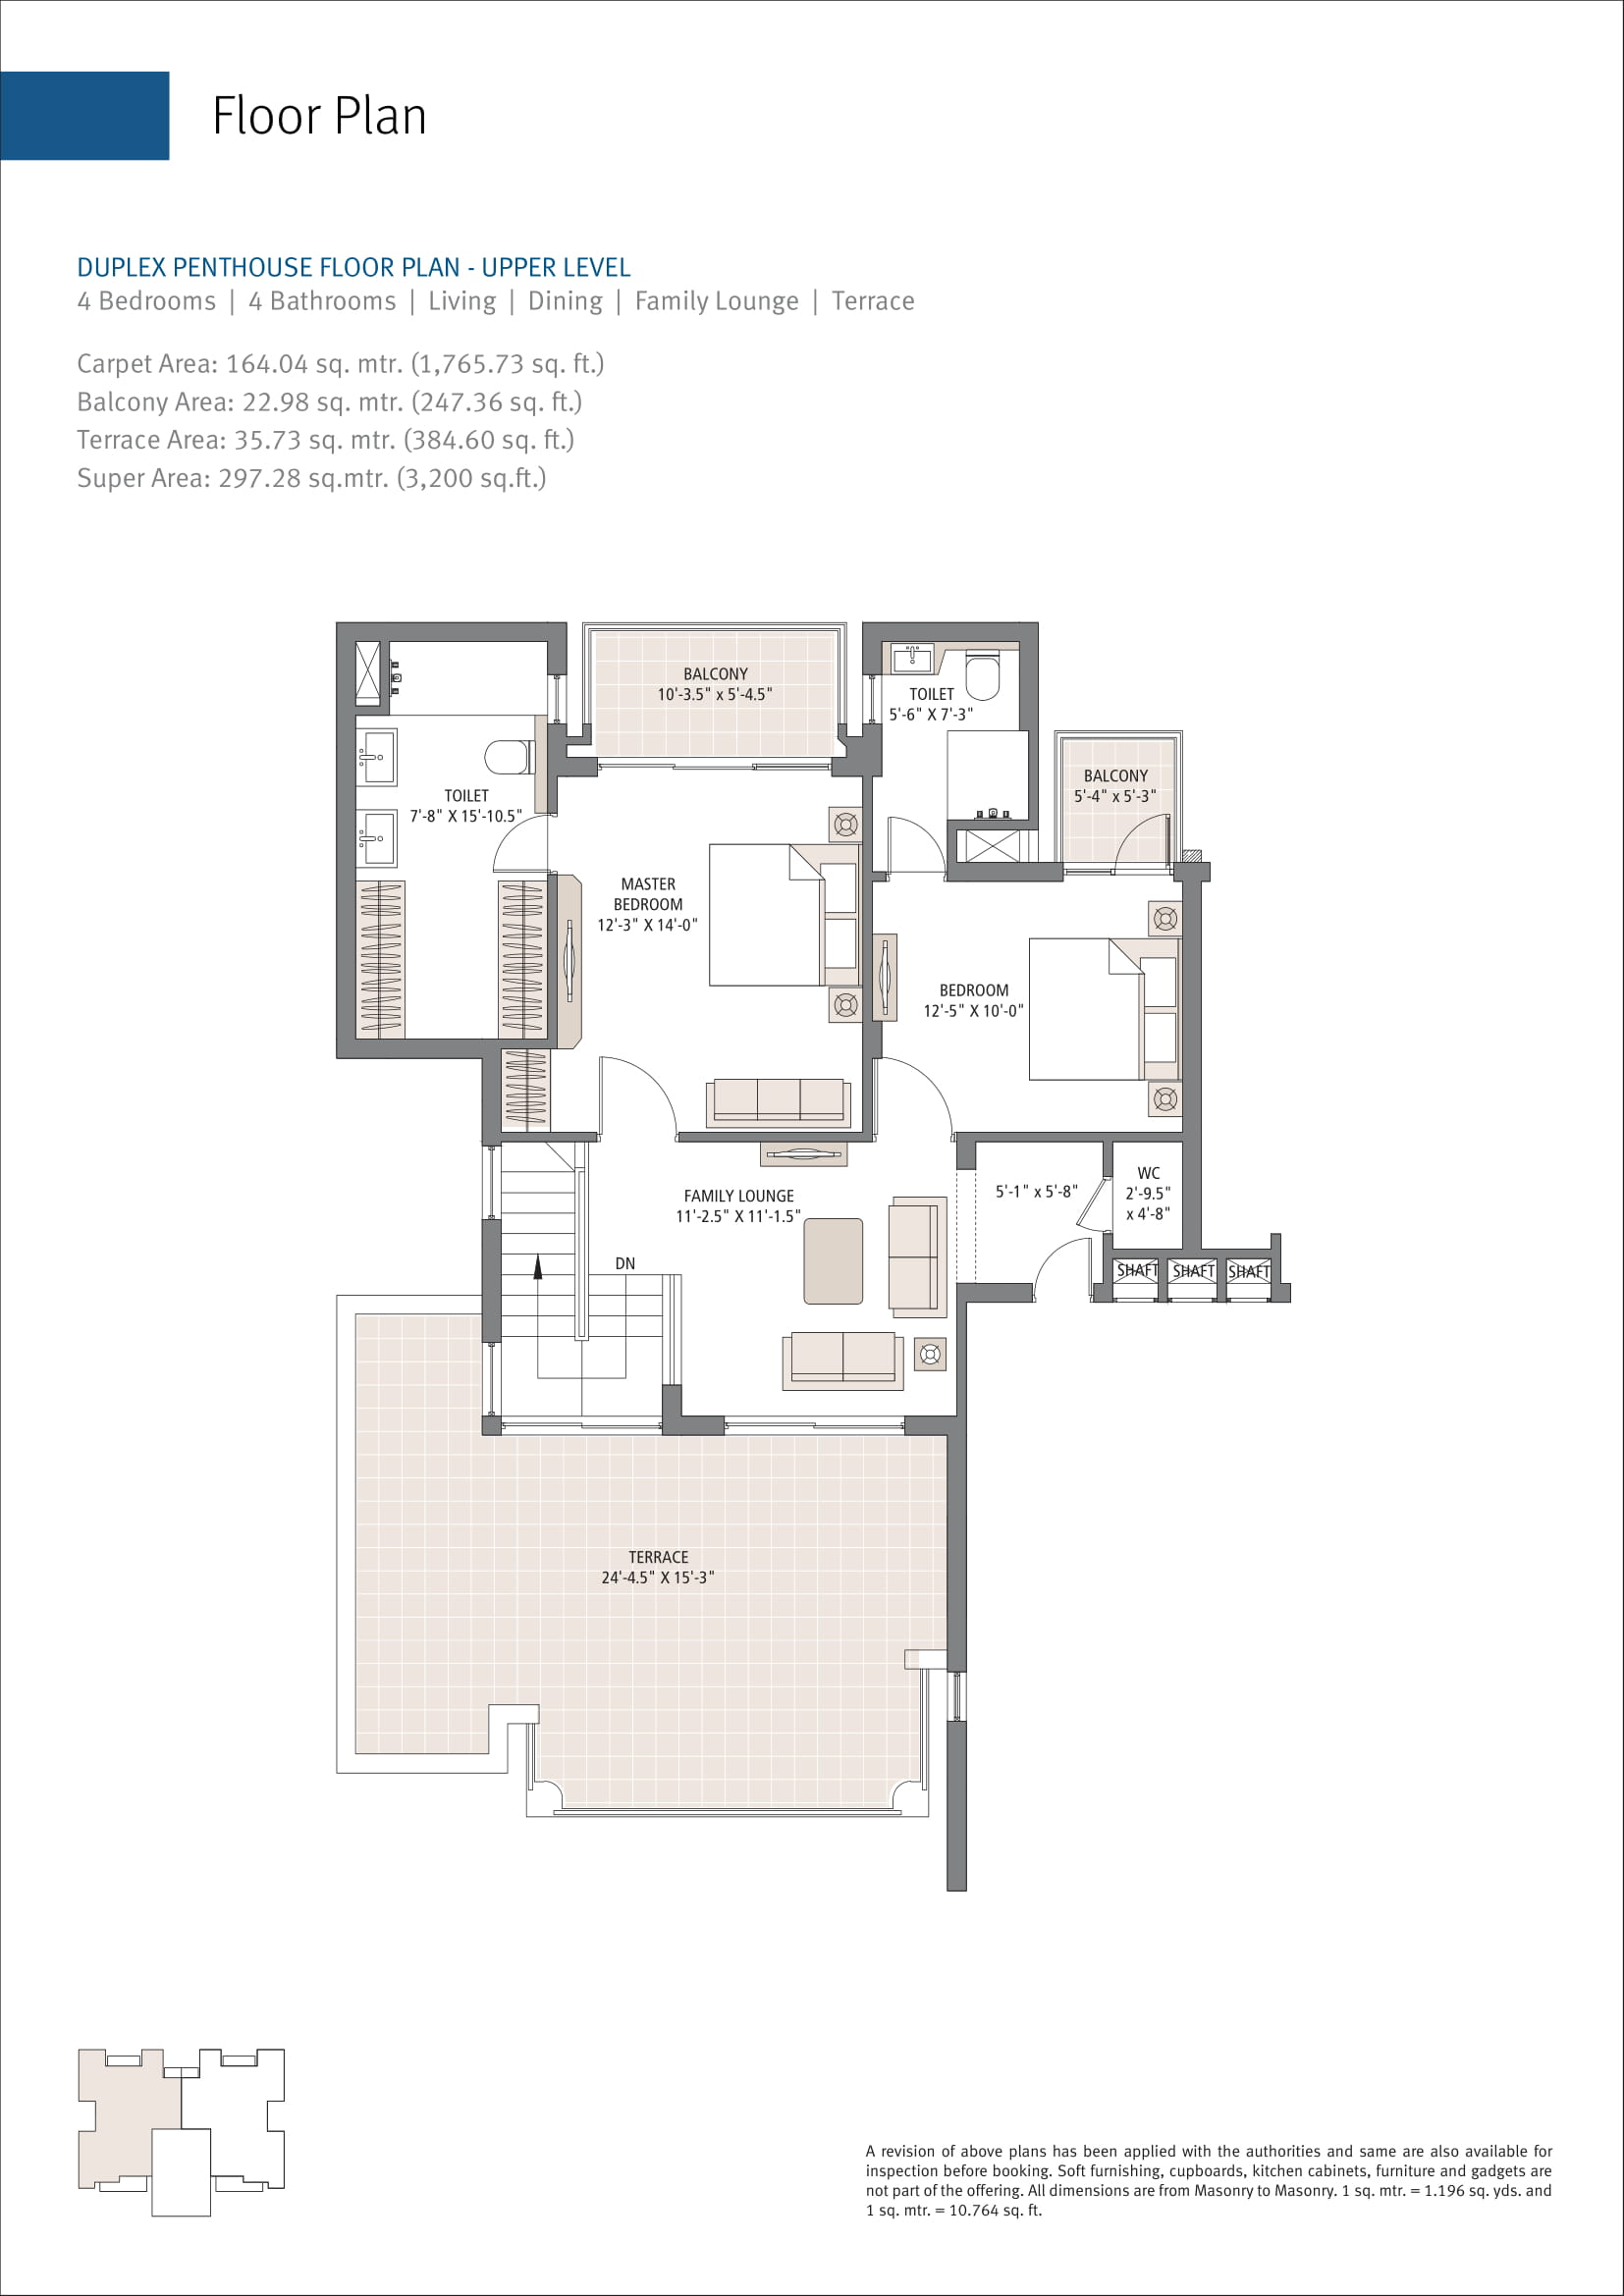 Emaar MGF Gurgaon Greens 4 BHK duplex Penthouse Lower Level Floor plan 3200 Sqft